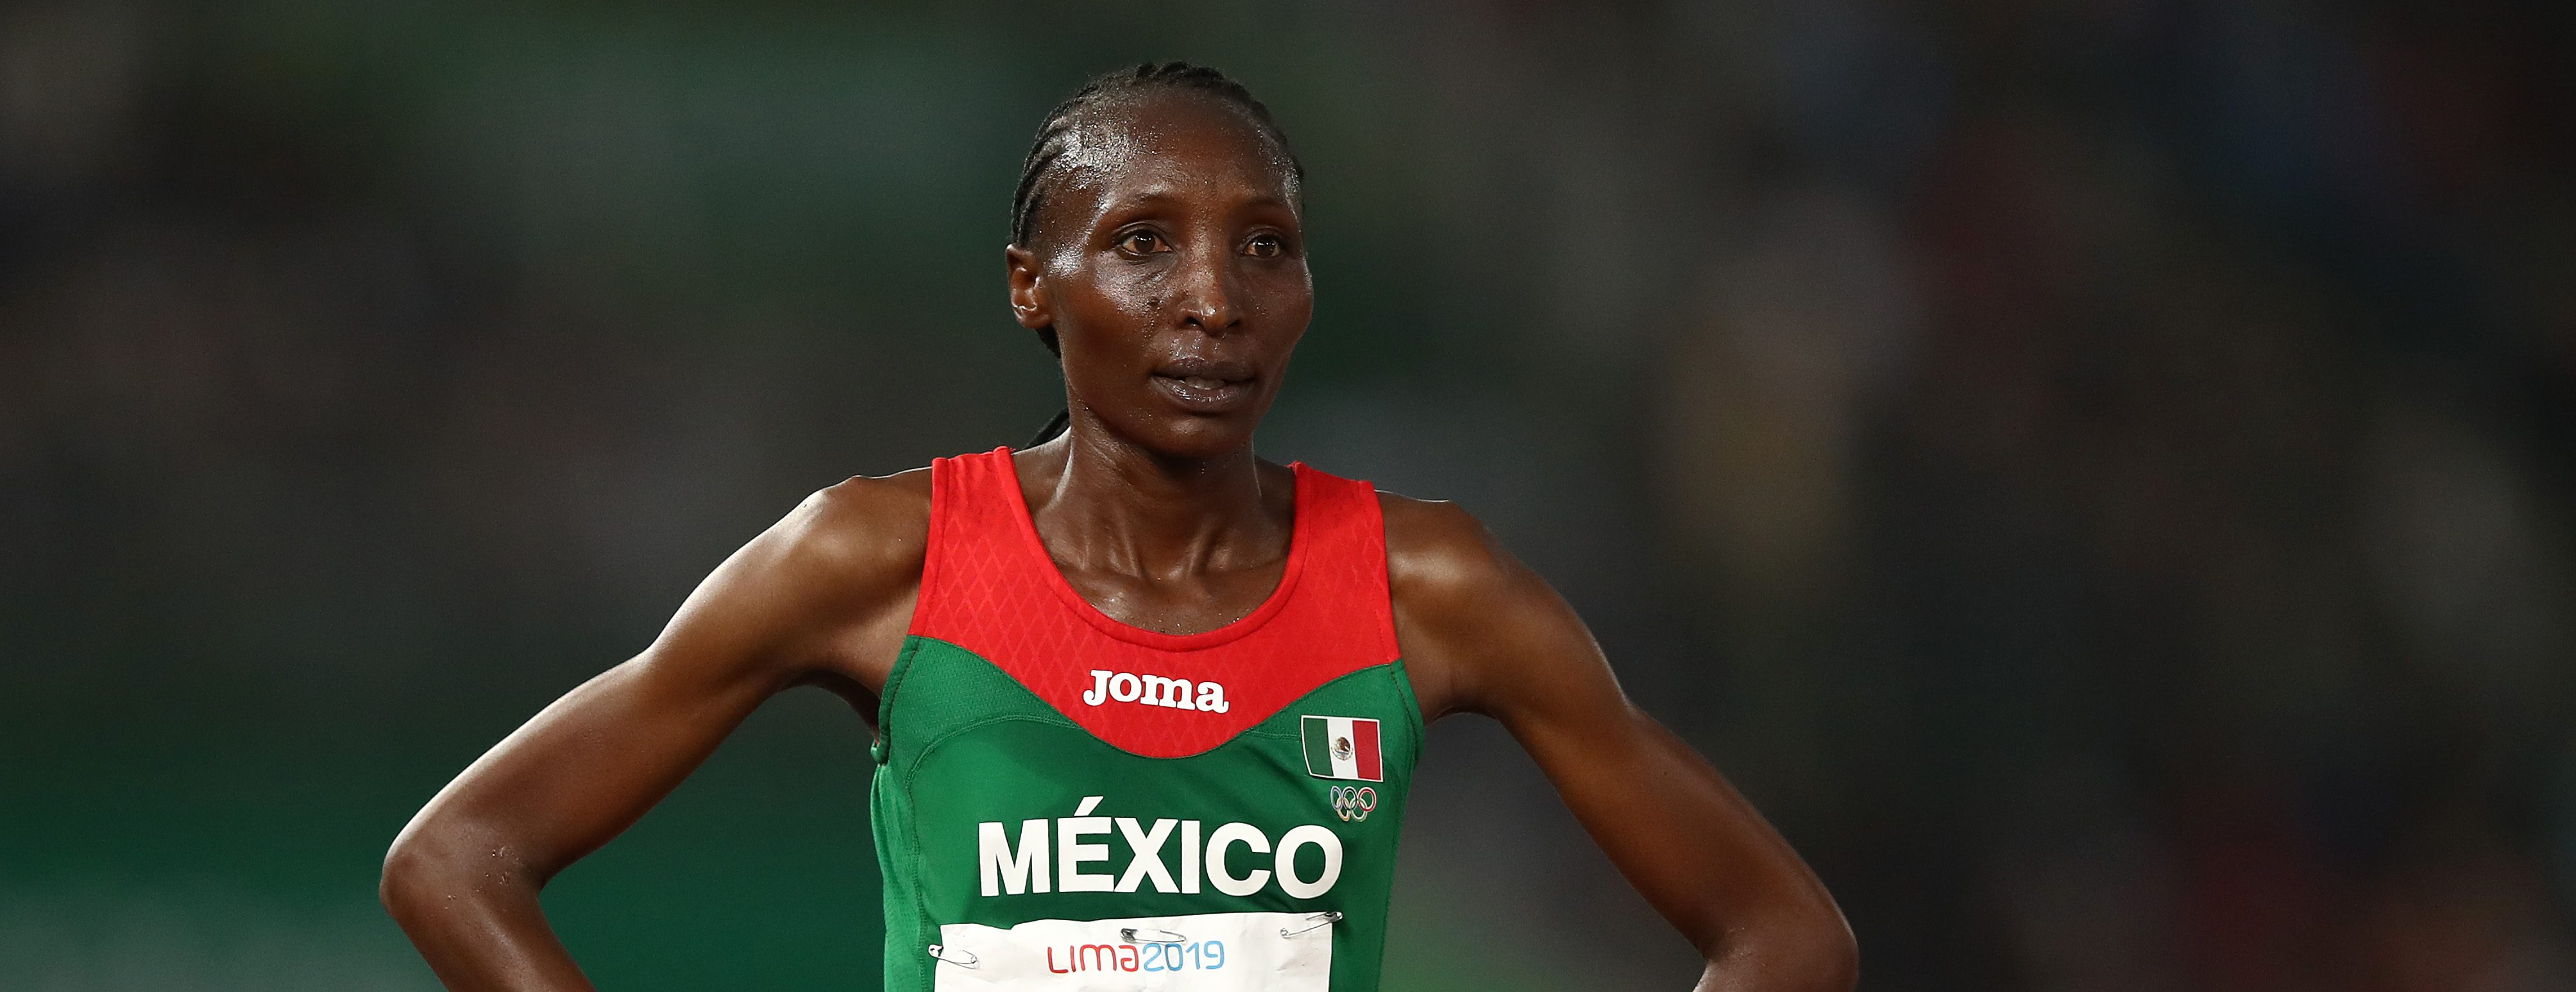 Meet Risper Biyaki Gesabwa, the Kenya-Born Racer Who Repped Mexico at Pan American Games